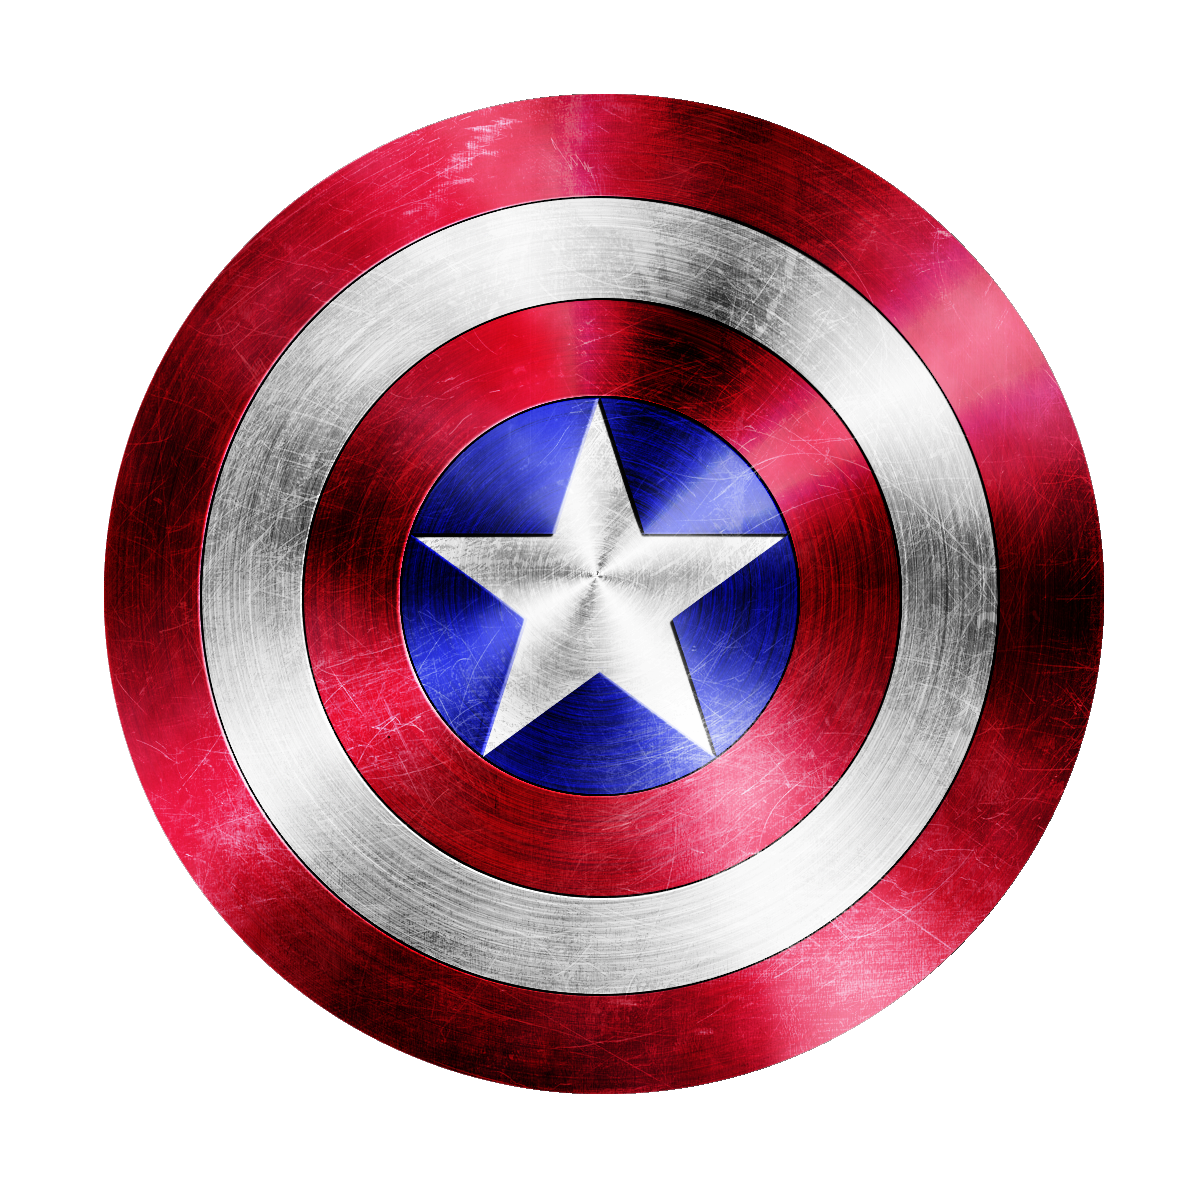 Captain america shield logo png. Photo this was uploaded